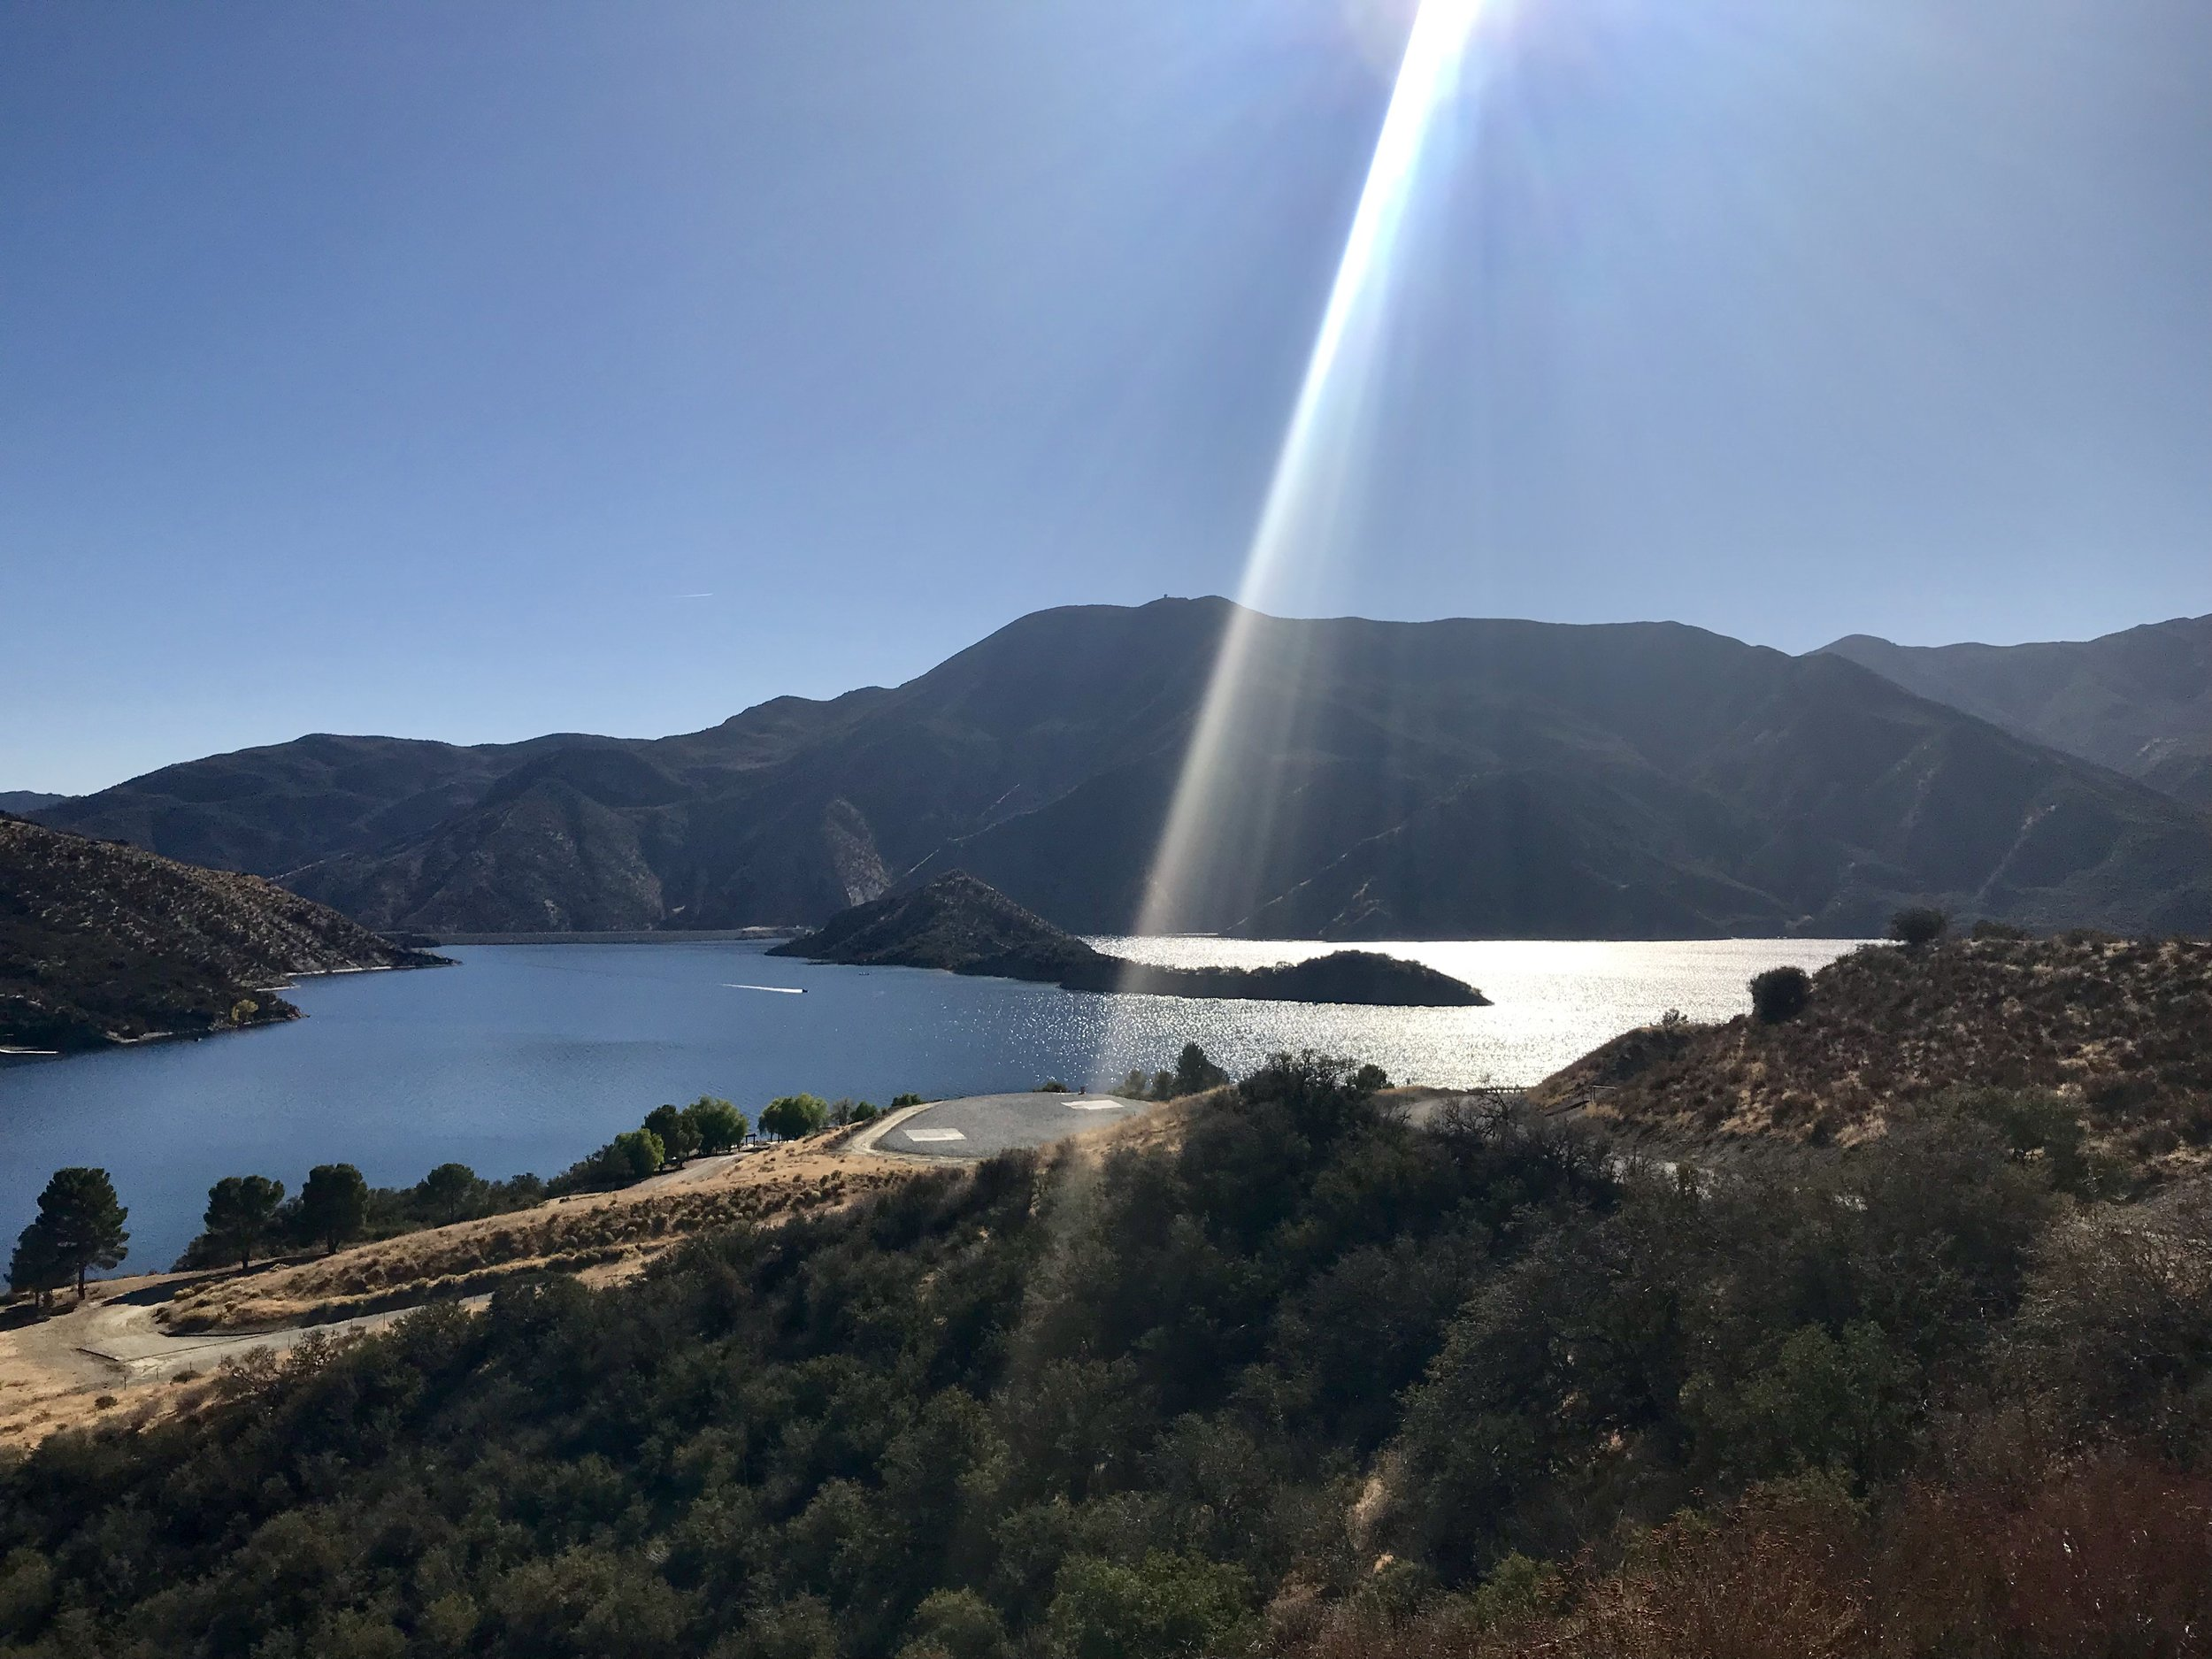 Pyramid Lake Reservoir, completed in 1973, is the deepest lake in the state. Here, water is held and conveyed to Castaic Lake Reservoir and from there supplies northwestern Los Angeles County.